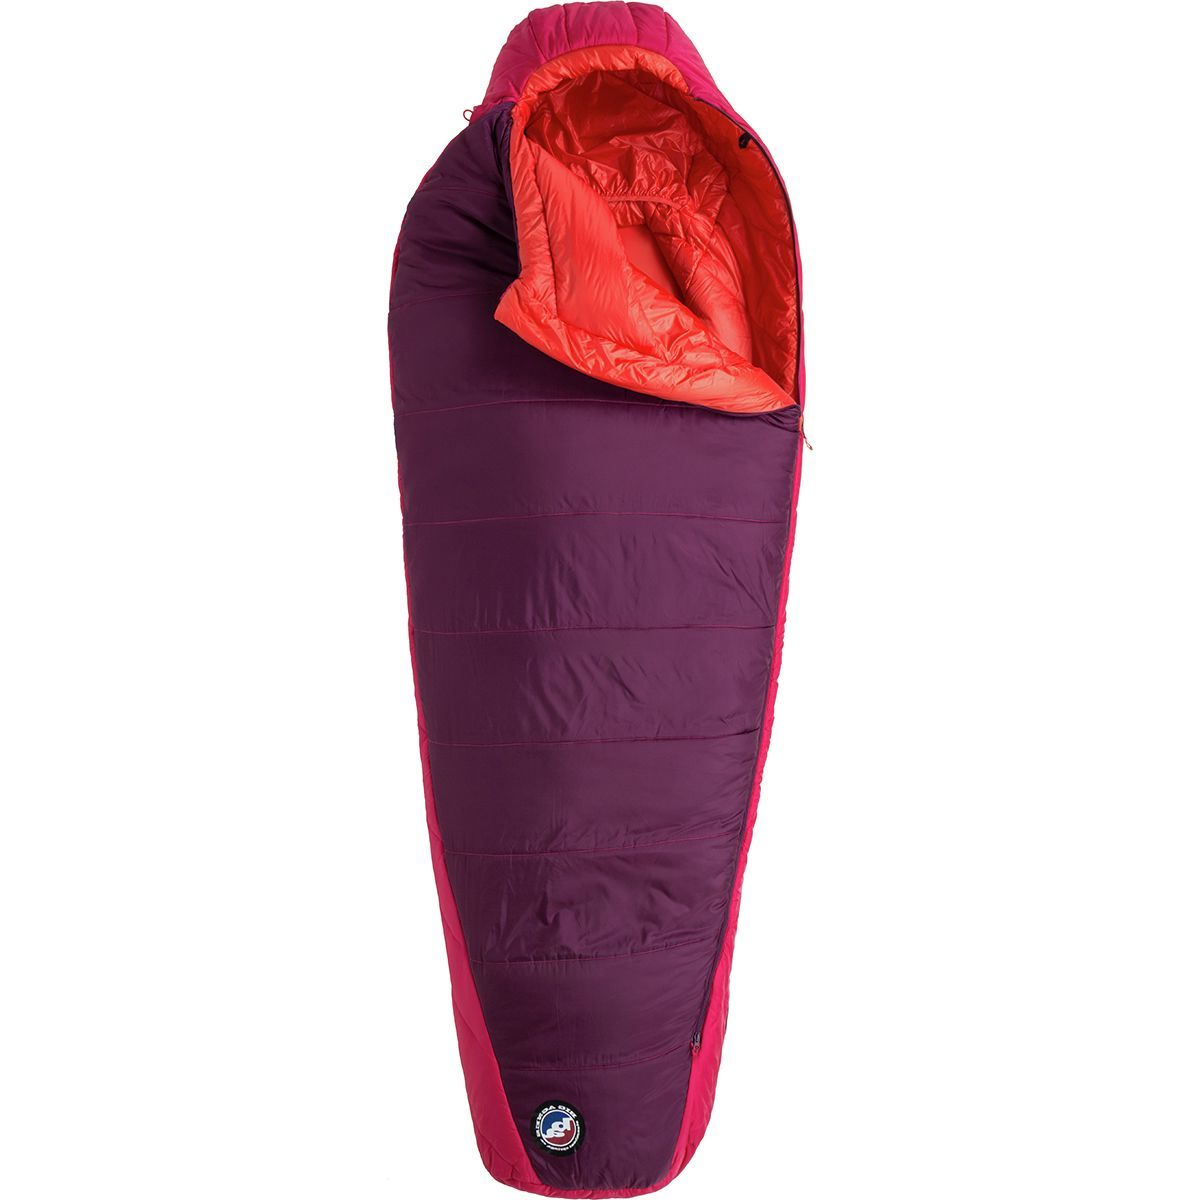 Big Agnes Sunbeam Sleeping Bag: 15 Degree Synthetic - Women's